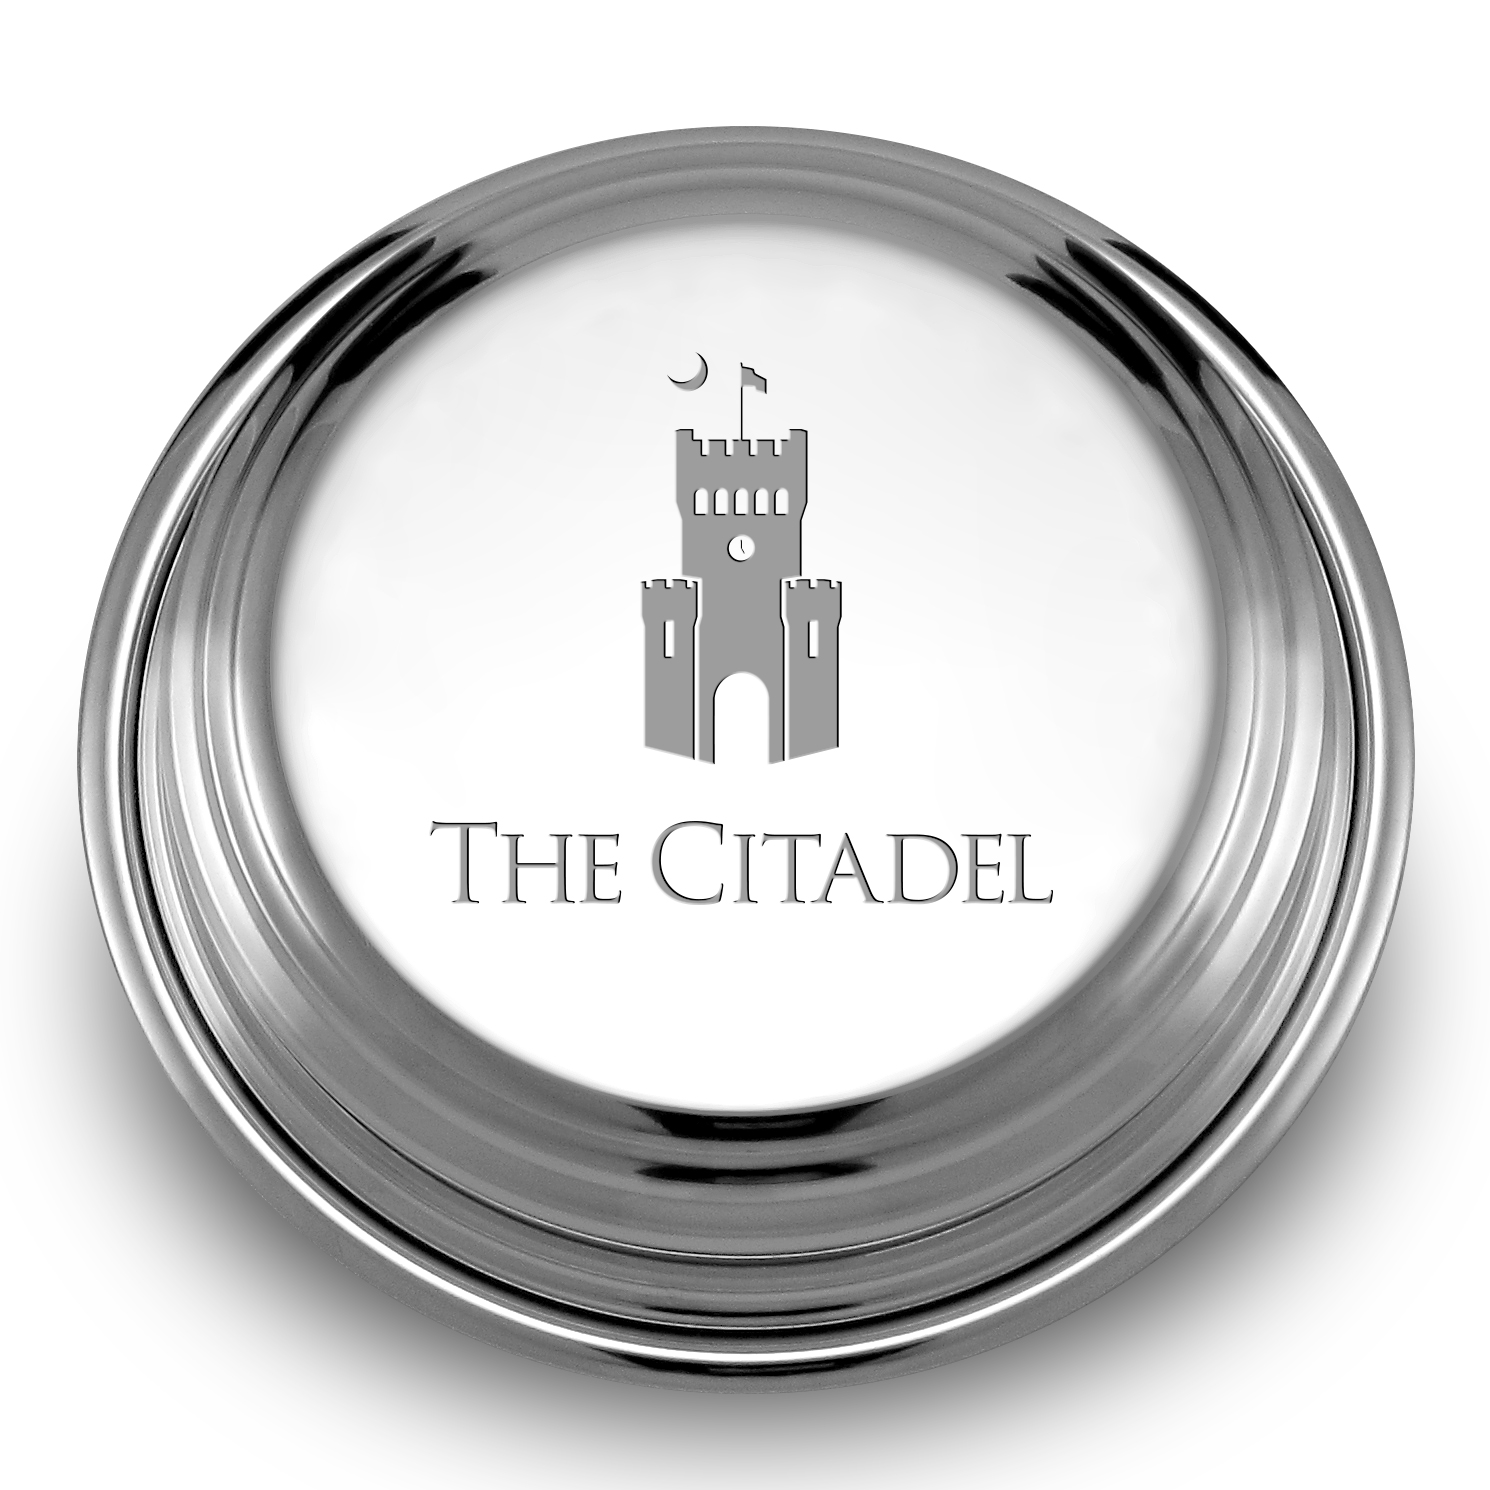 Citadel Pewter Paperweight - Image 2